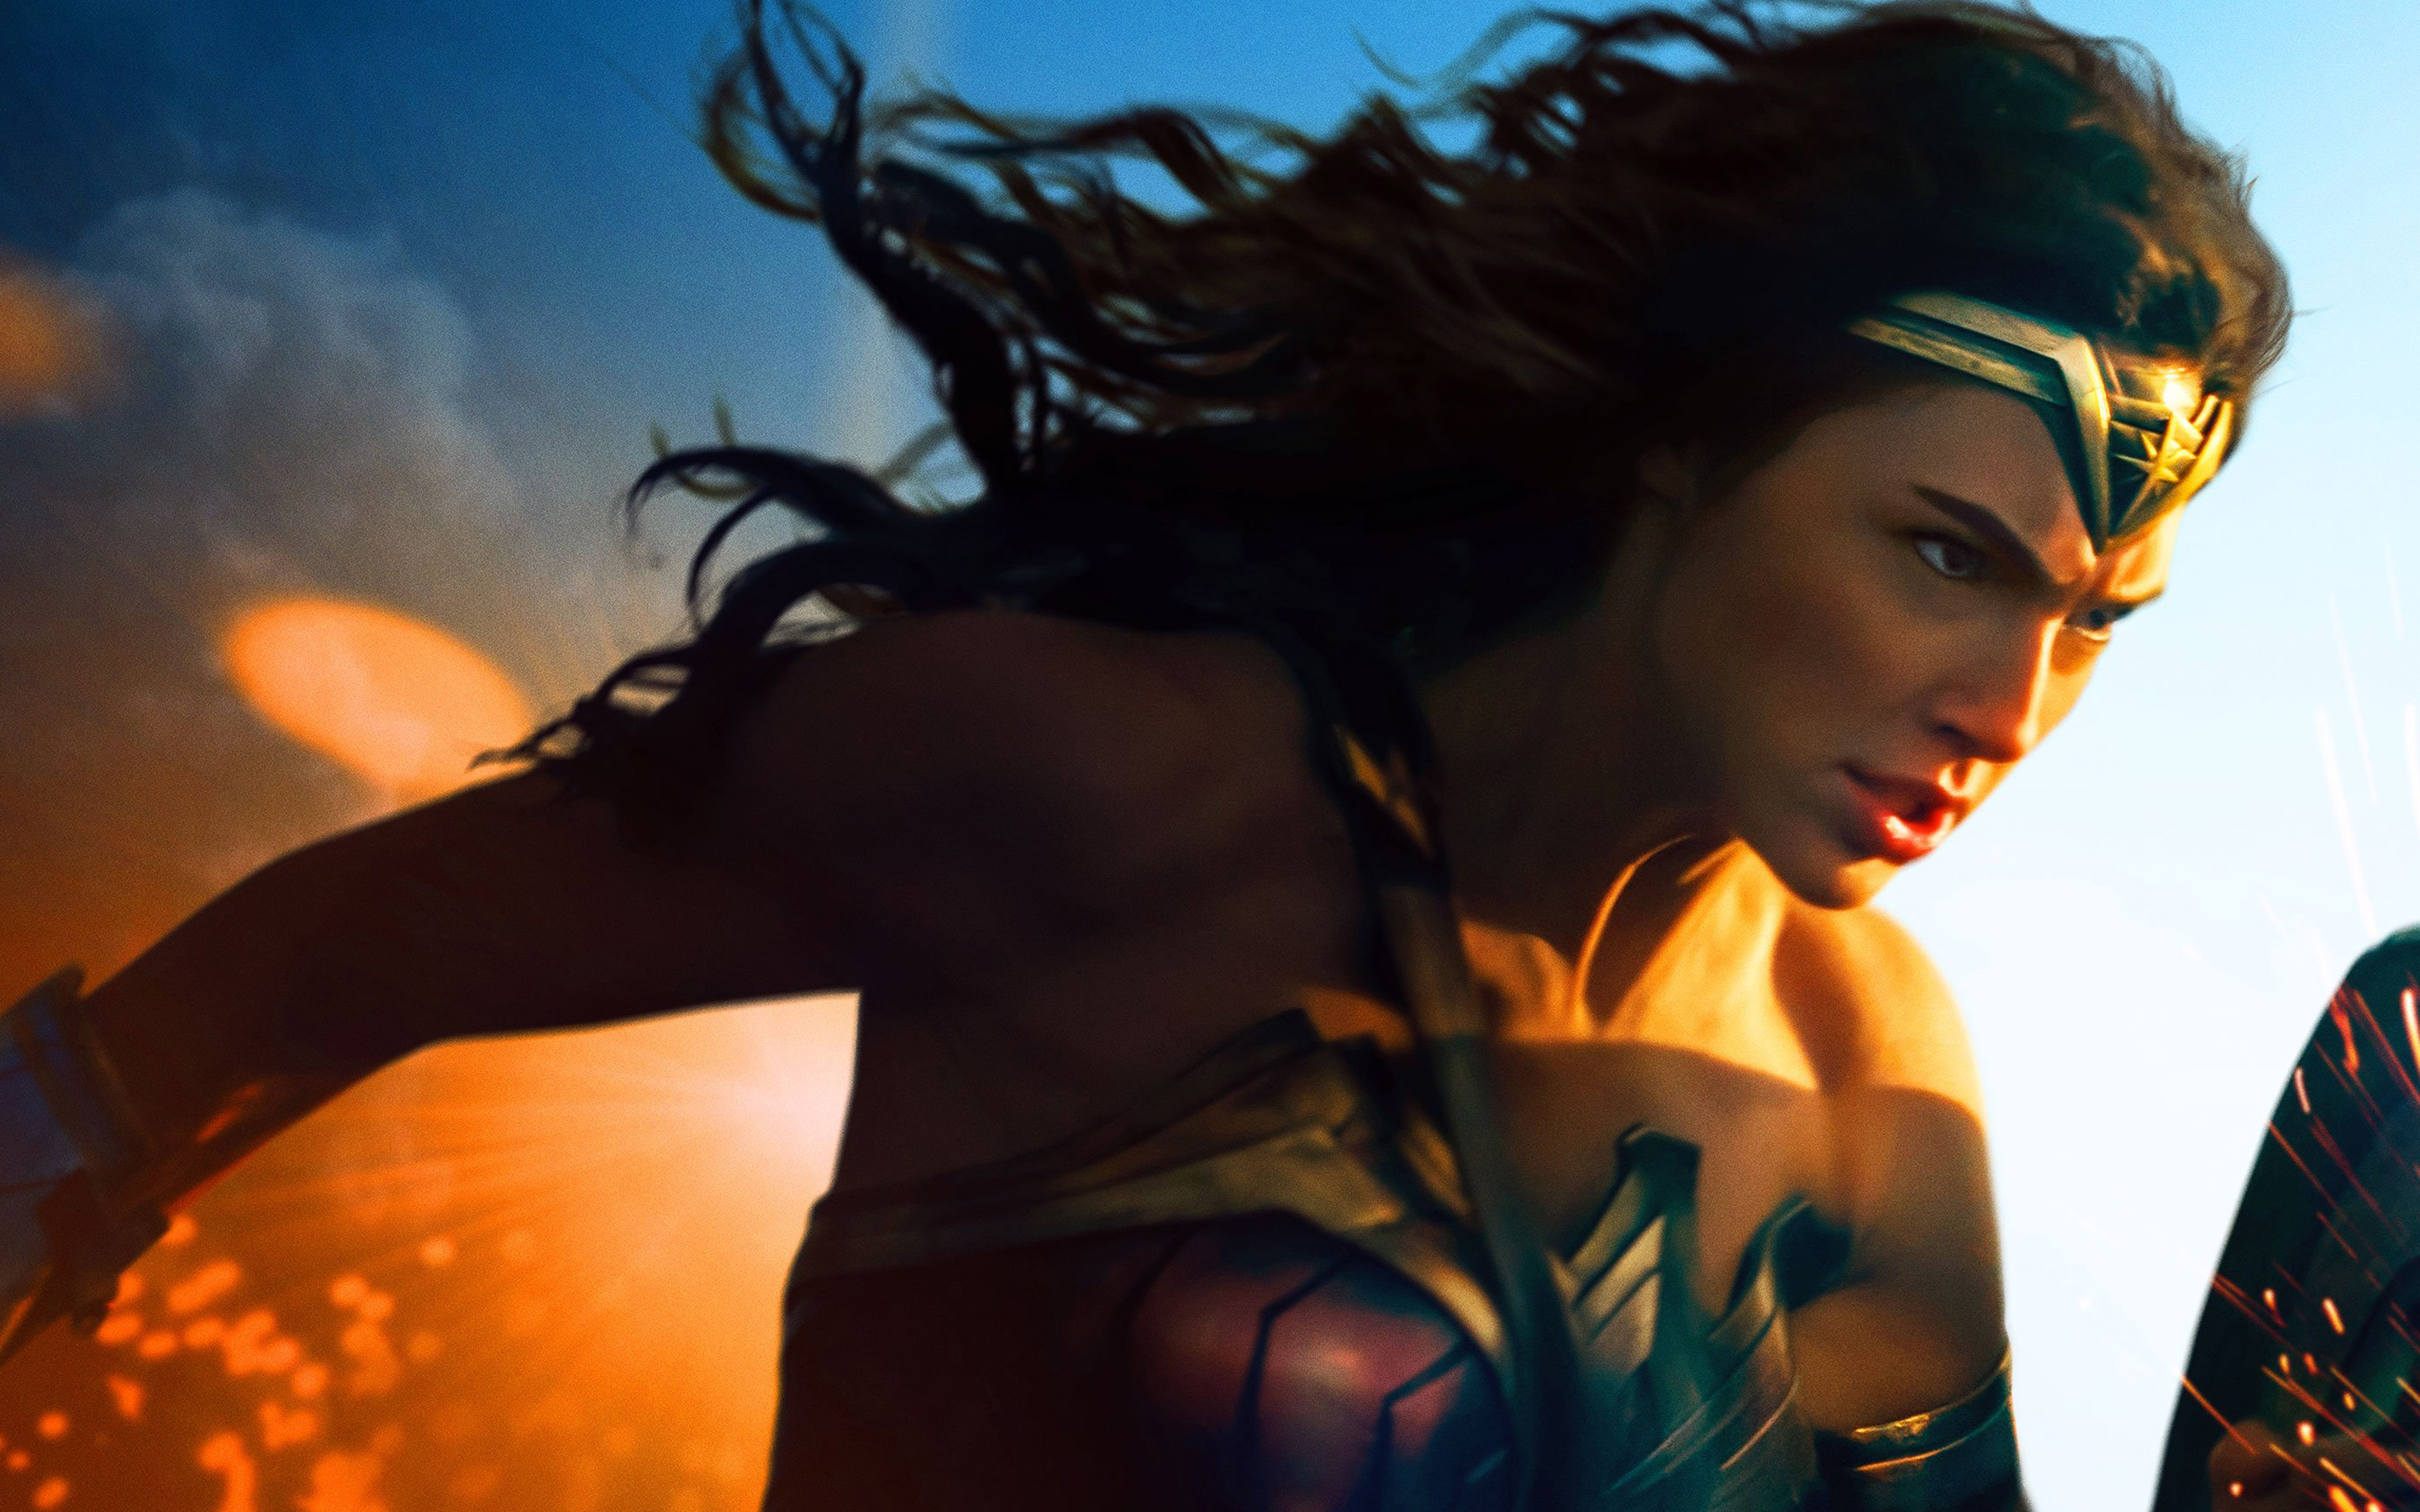 Gadot 4k Wallpapers For Your Desktop Or Mobile Screen Free And